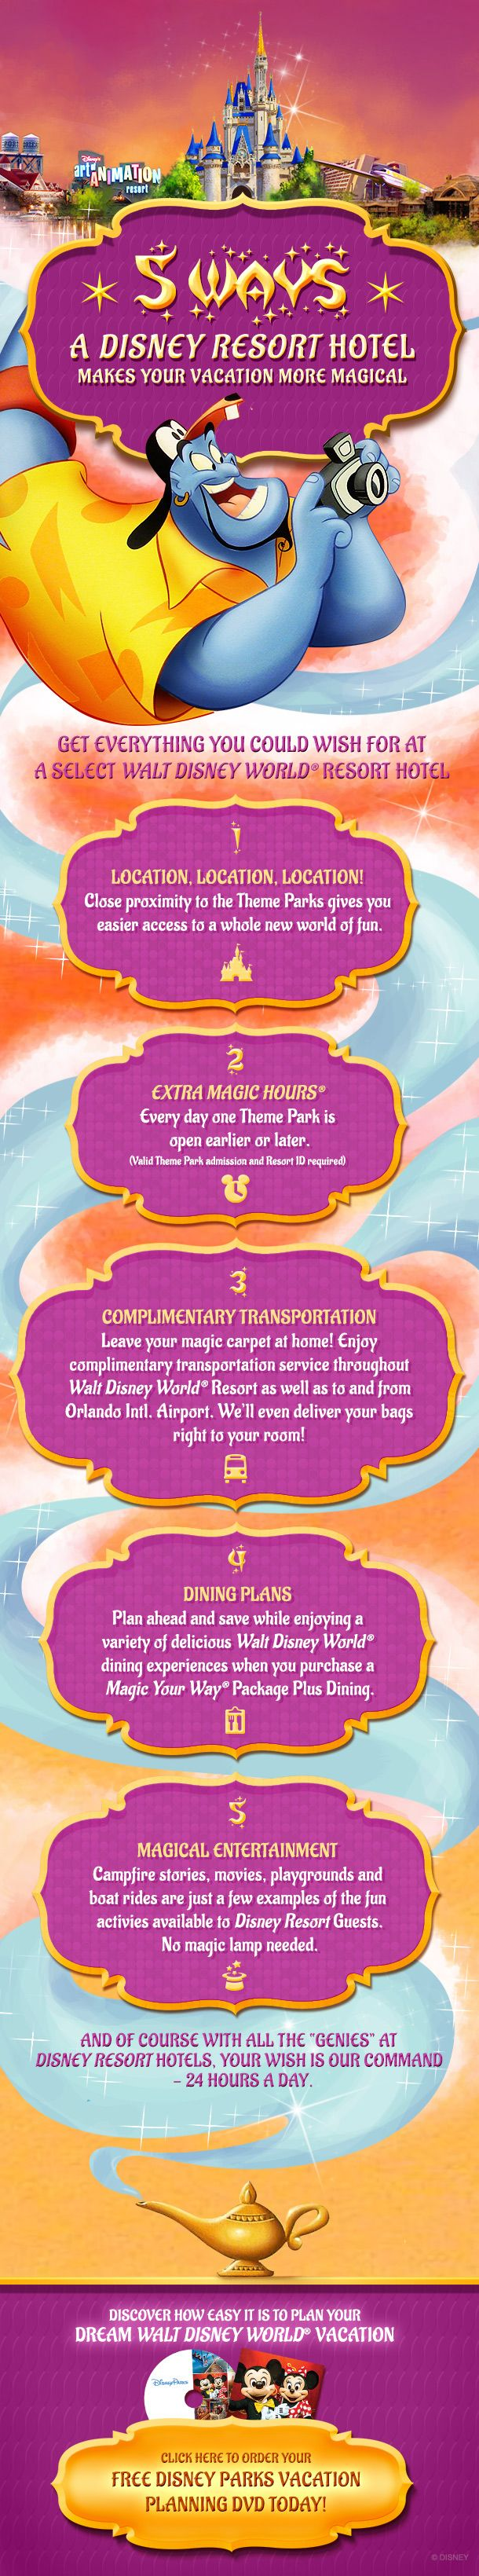 5 Ways a Disney Resort Hotel makes your vacation more Magical!  #DisneyWorld